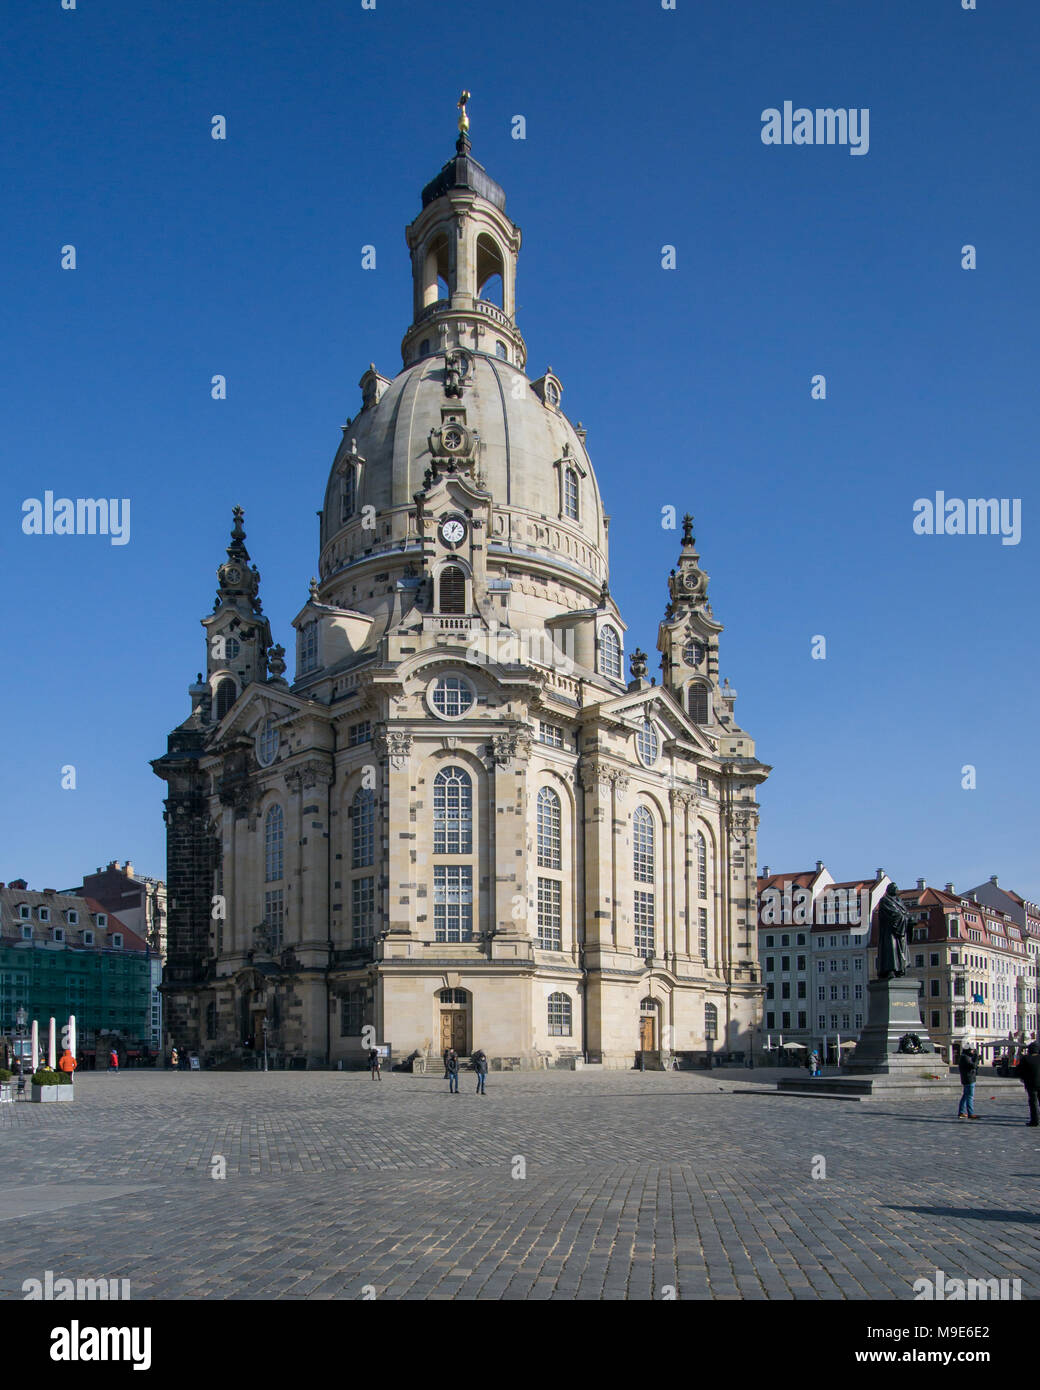 Frauenkirche Dresden on a sunny day with blue sky, Germany. Stock Photo